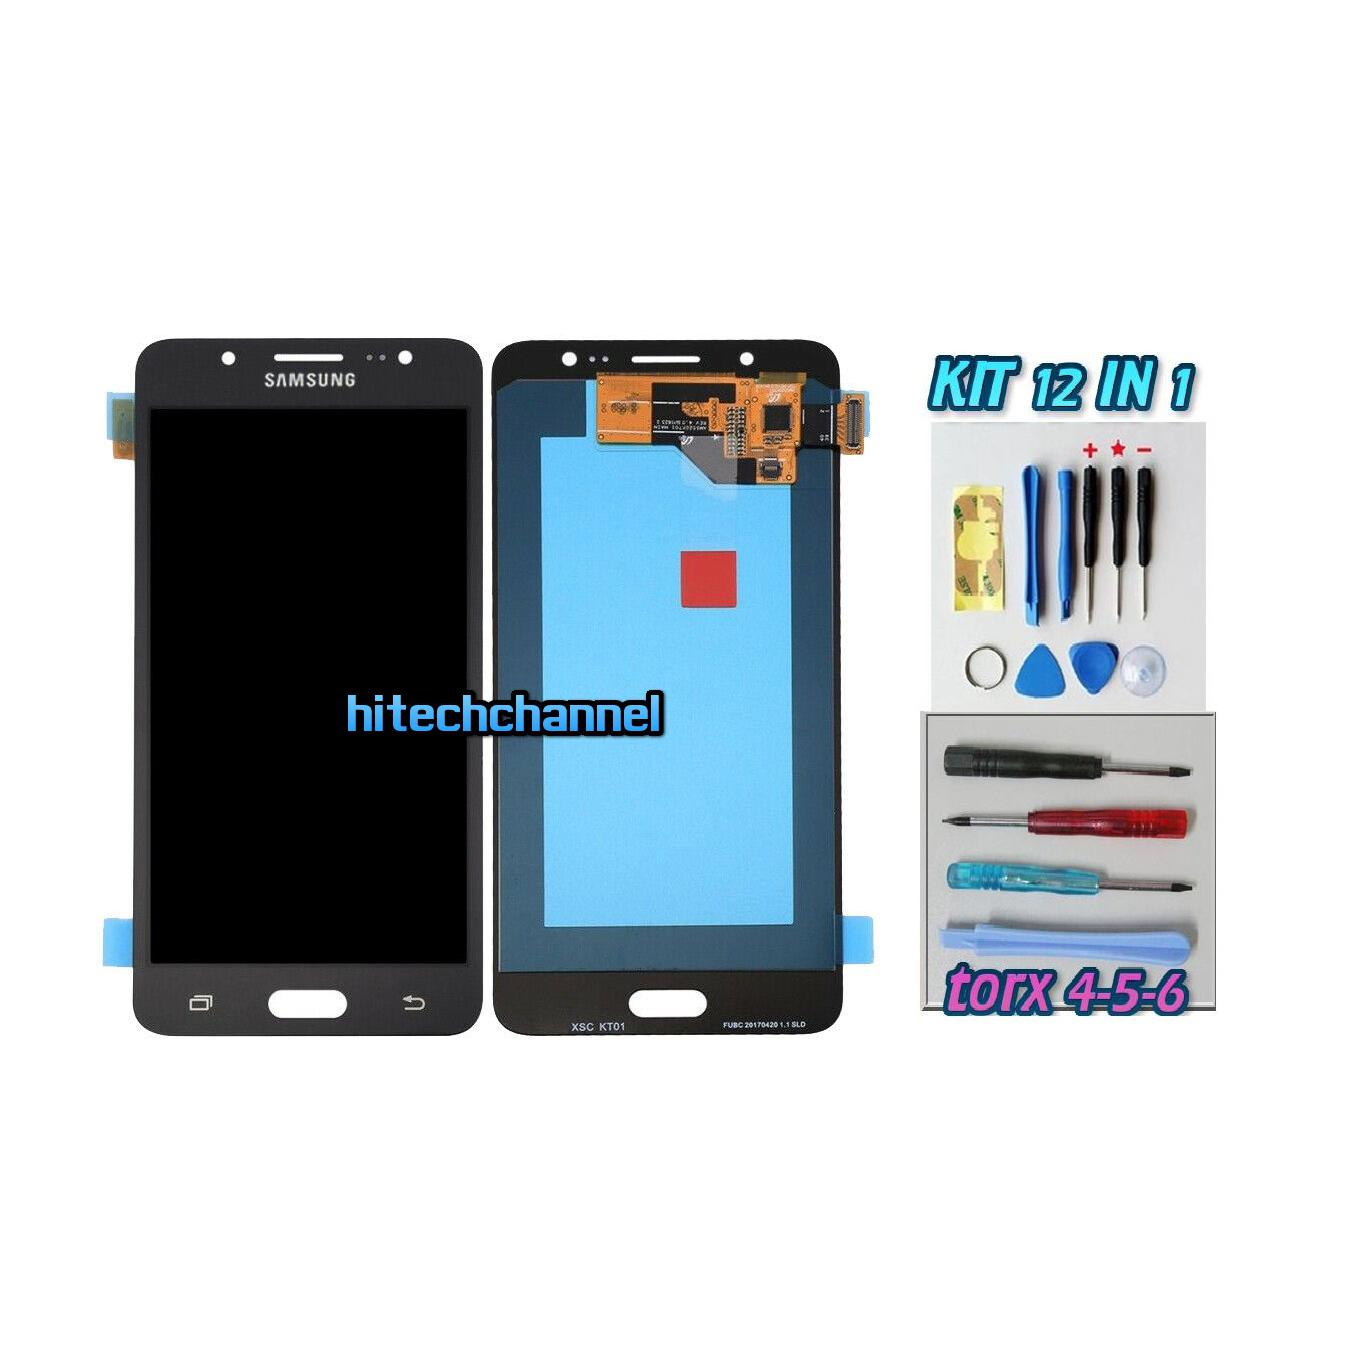 TOUCH SCREEN LCD DISPLAY NERO Samsung Galaxy J5 2016 SM-J510FN+kit 9 in 1 e biadesivo